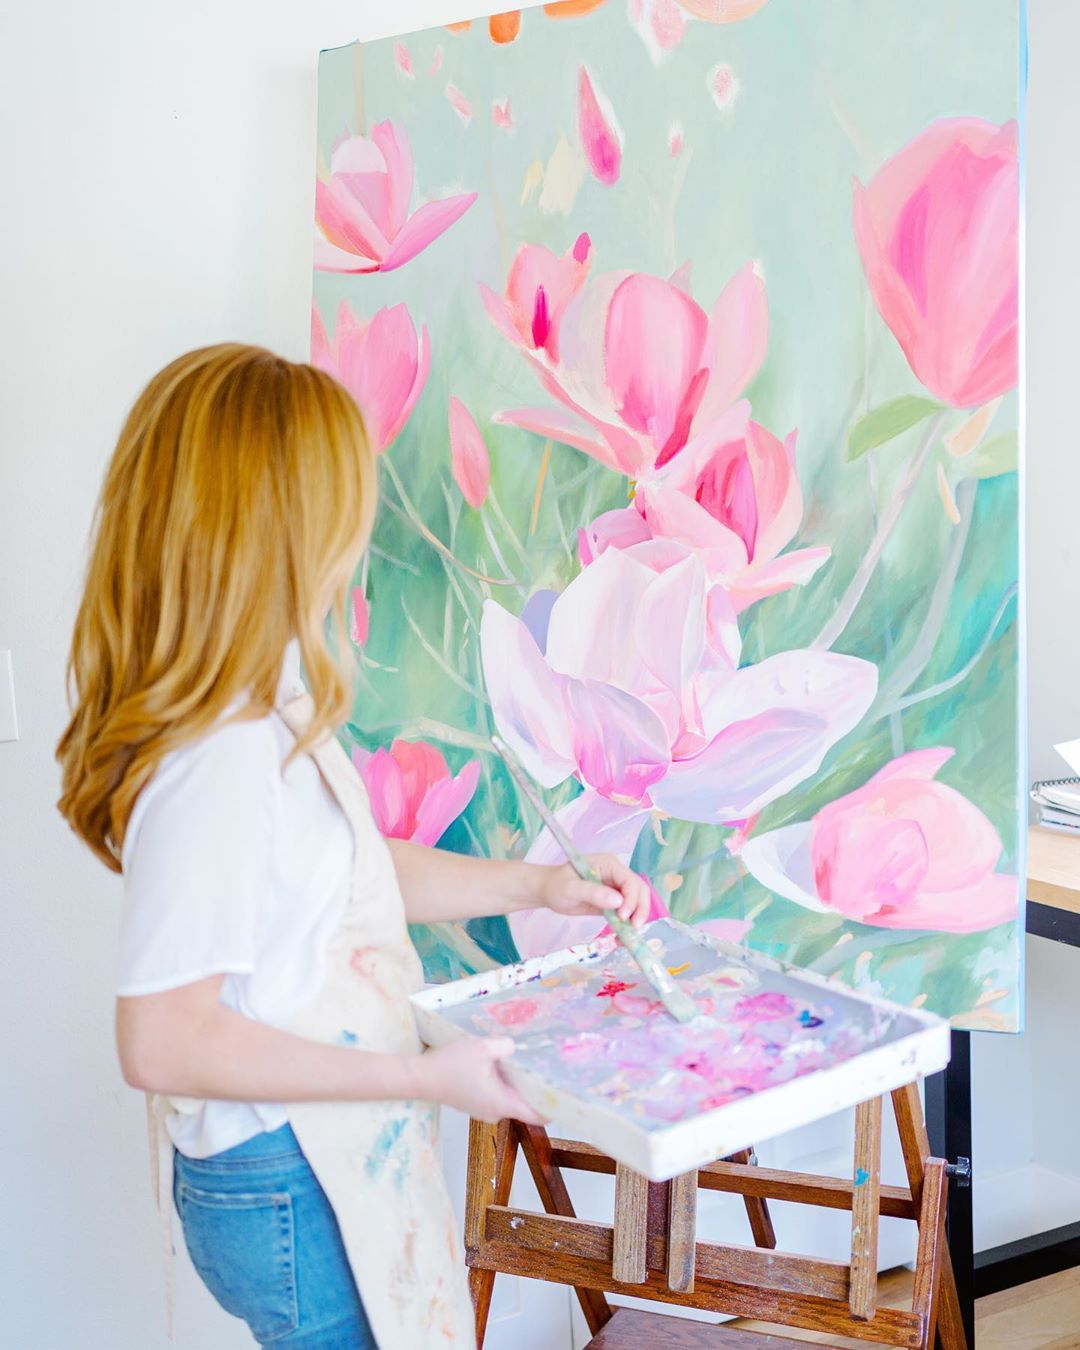 Take a look at artist, CoCo Zentner, in her Texas home studio and a little behind the scenes on her current work-in-progress. She loves painting florals (in pink) with oil paint. Learn more about the artist through the link! #artist #inthestudio #oilpainting #painting #studio #art #artforsale